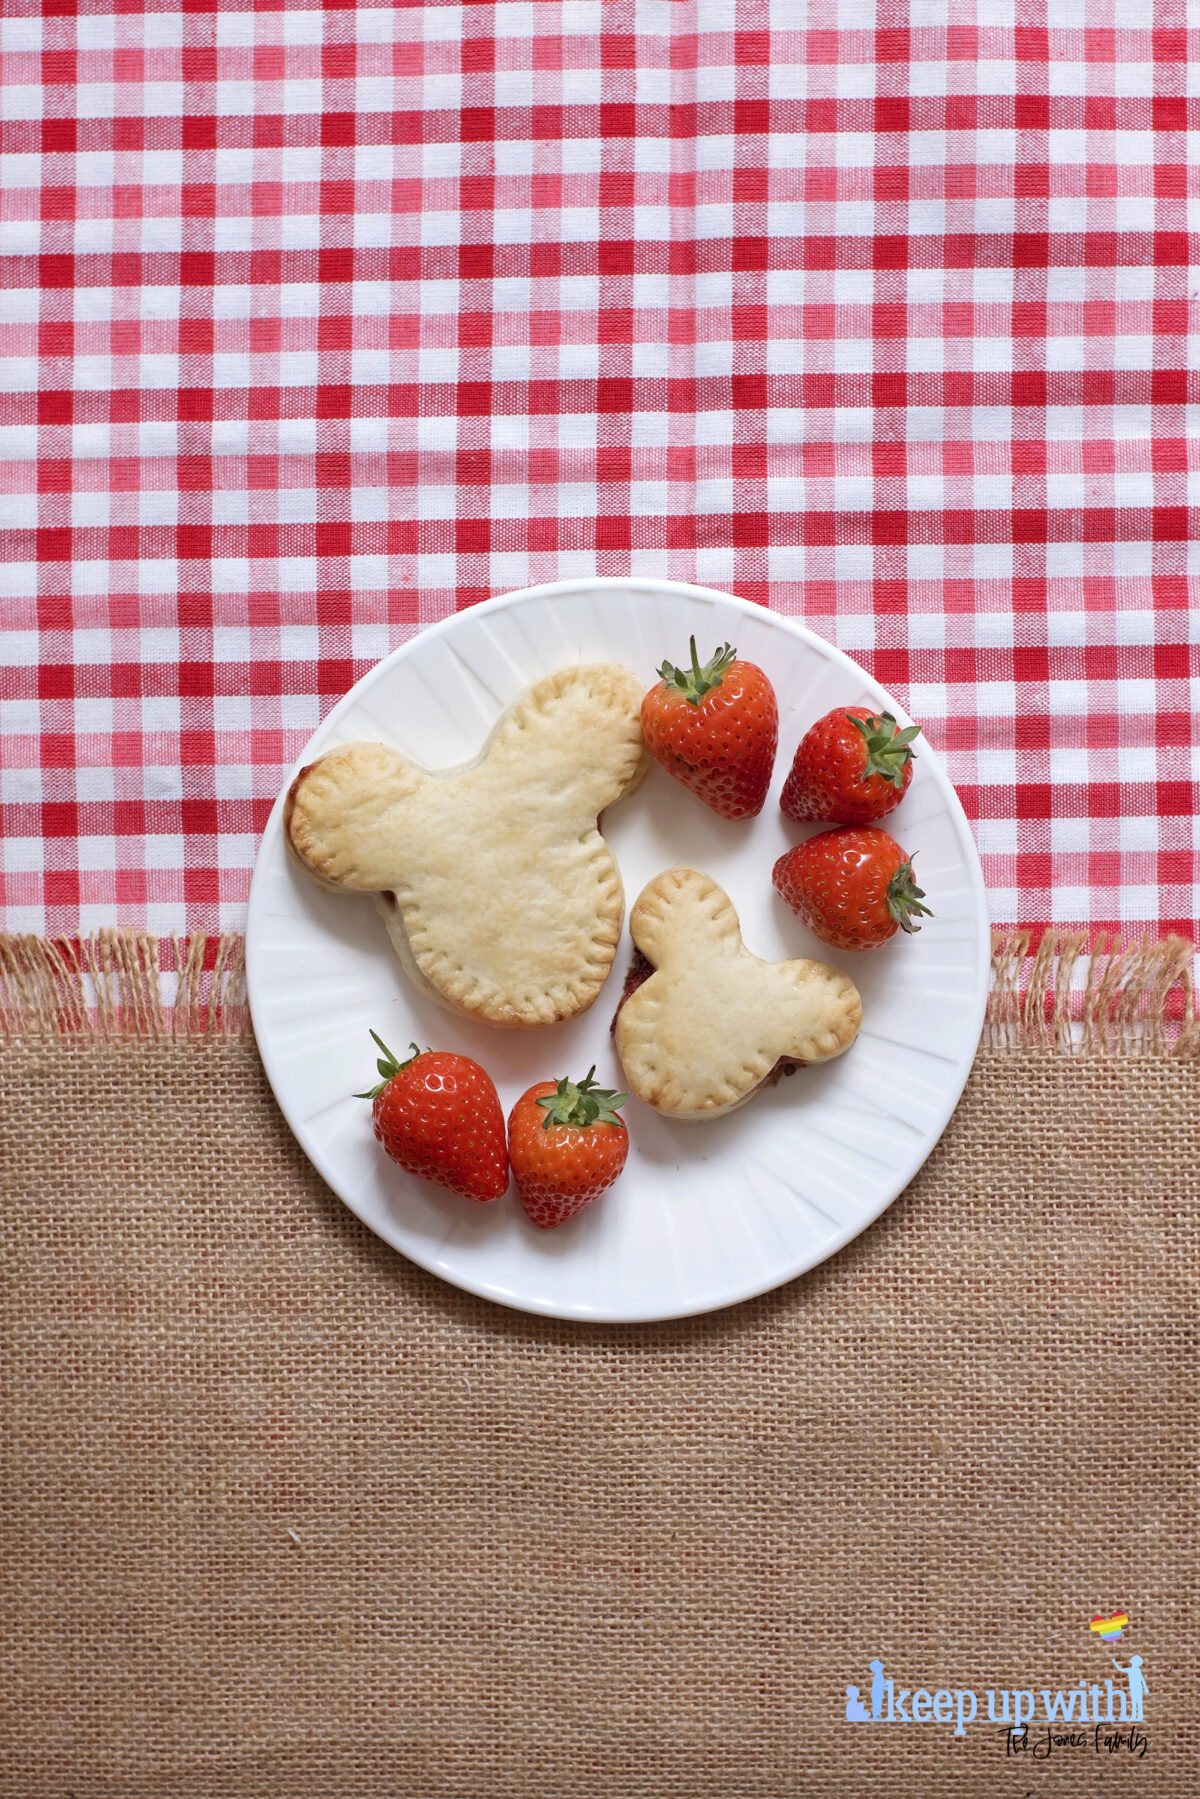 Image shows a flatlay of a red gingham checked tablecloth, overlaid with a jute burlap material with a fringe. On top is a white Vera Wang sideplate with two Mickey Mouse shaped shortcrust pies on. One is larger than the other, and there are strawberries next to the pies. There is a ShopDisney fork balancing on the plate with a summer citrus and apples pattern on it.  The image is watermarked by Keep up with the Jones Family.